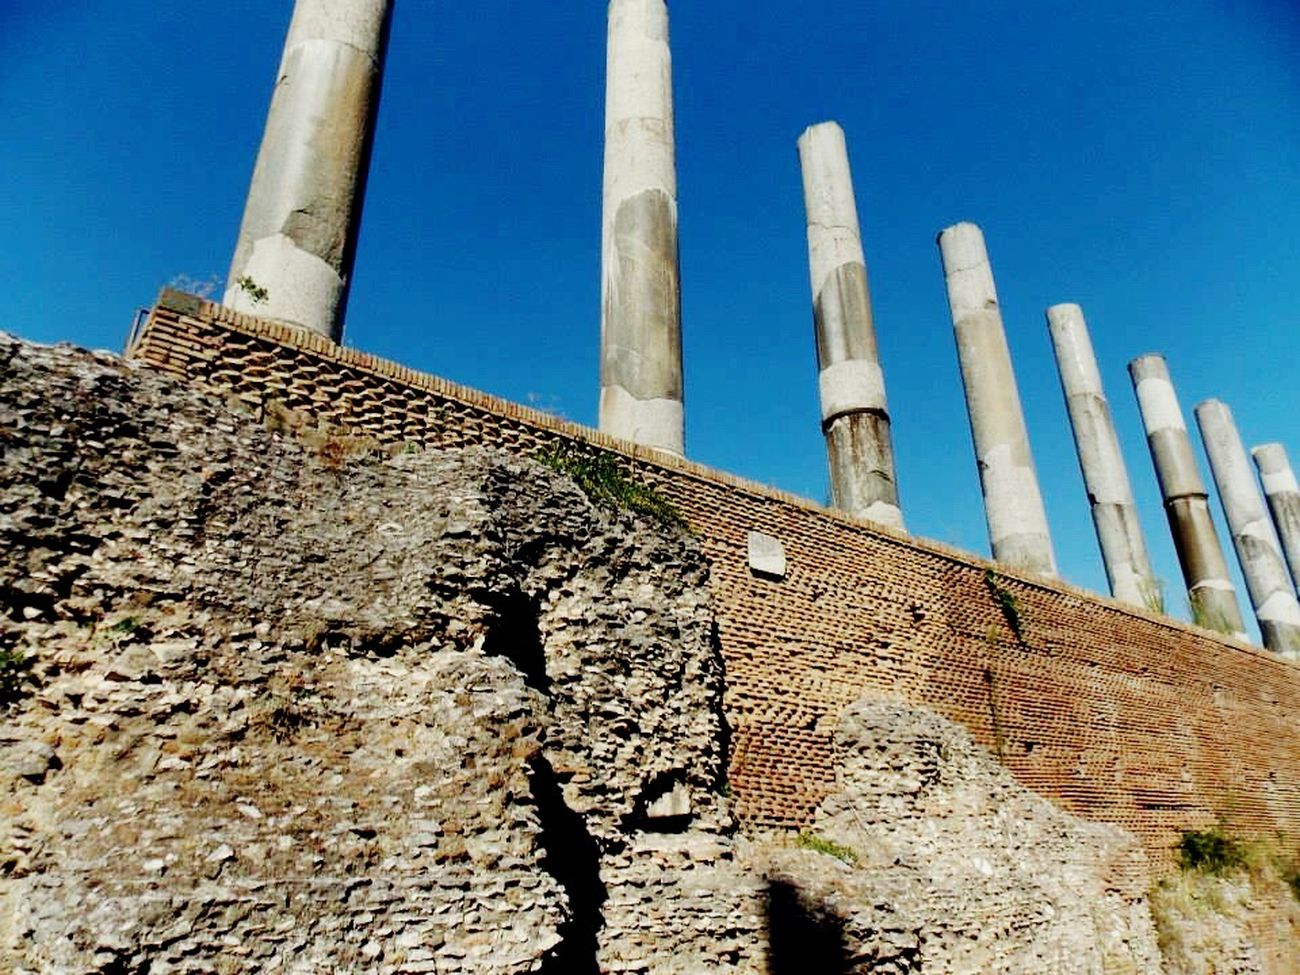 Architecture Roman Ruins Historic City Historical Ruins Columns Blue Sky Daylight Built Structure Clear Sky Day Outdoors No People History Ancient Civilization Travel Tourism Travel Destinations Architectural Column Old Architecture Travel Photography Europe Rome Italy